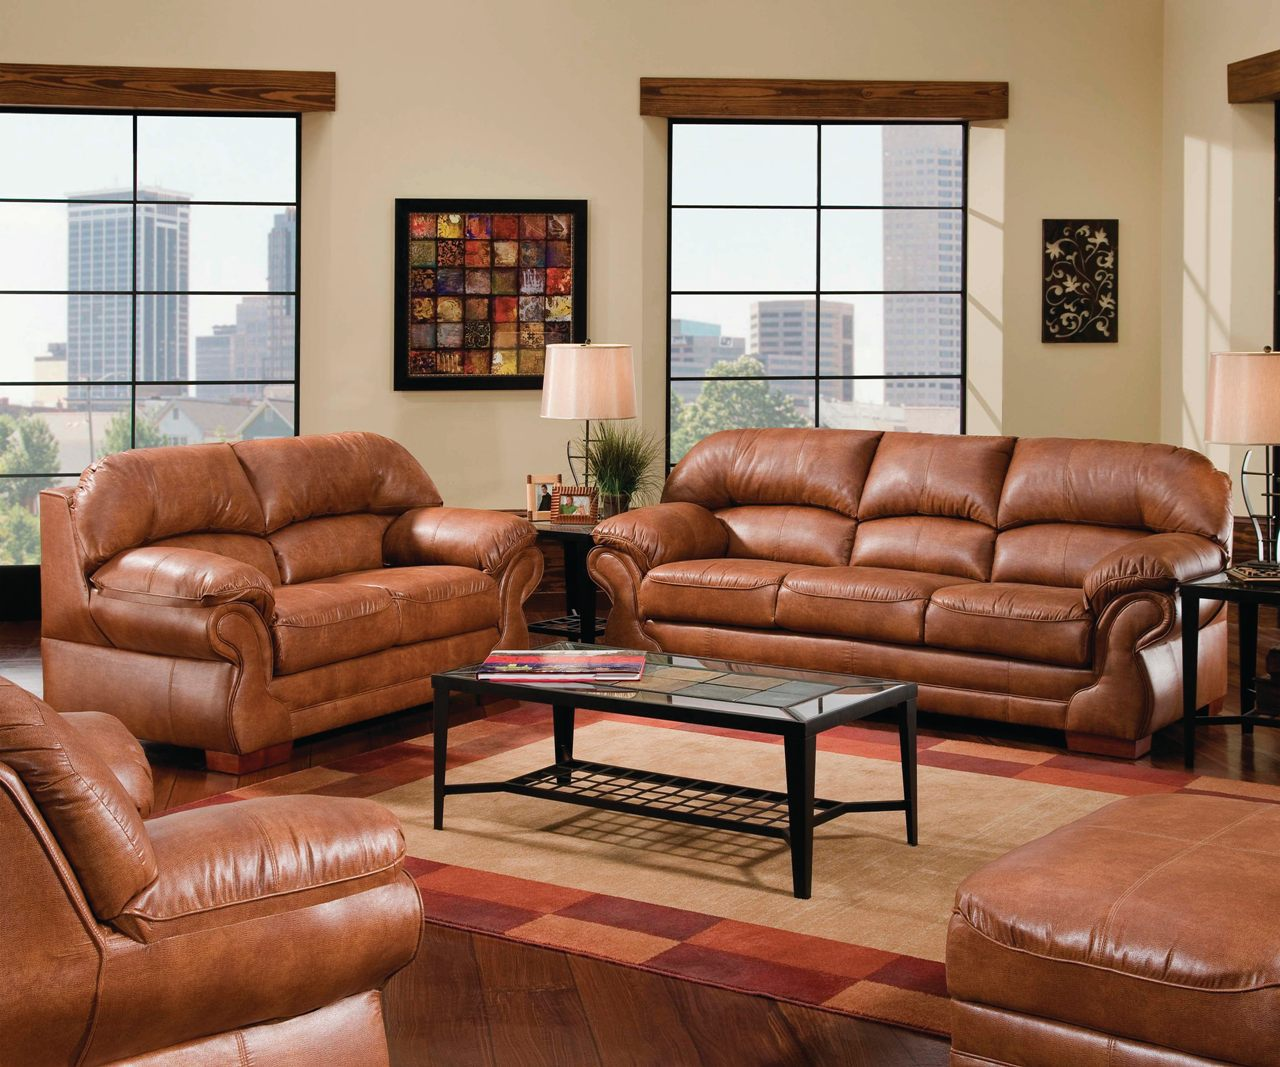 Visit Our Furniture Store In Lincoln NE | Household Appliances | Salvage  Warehouse